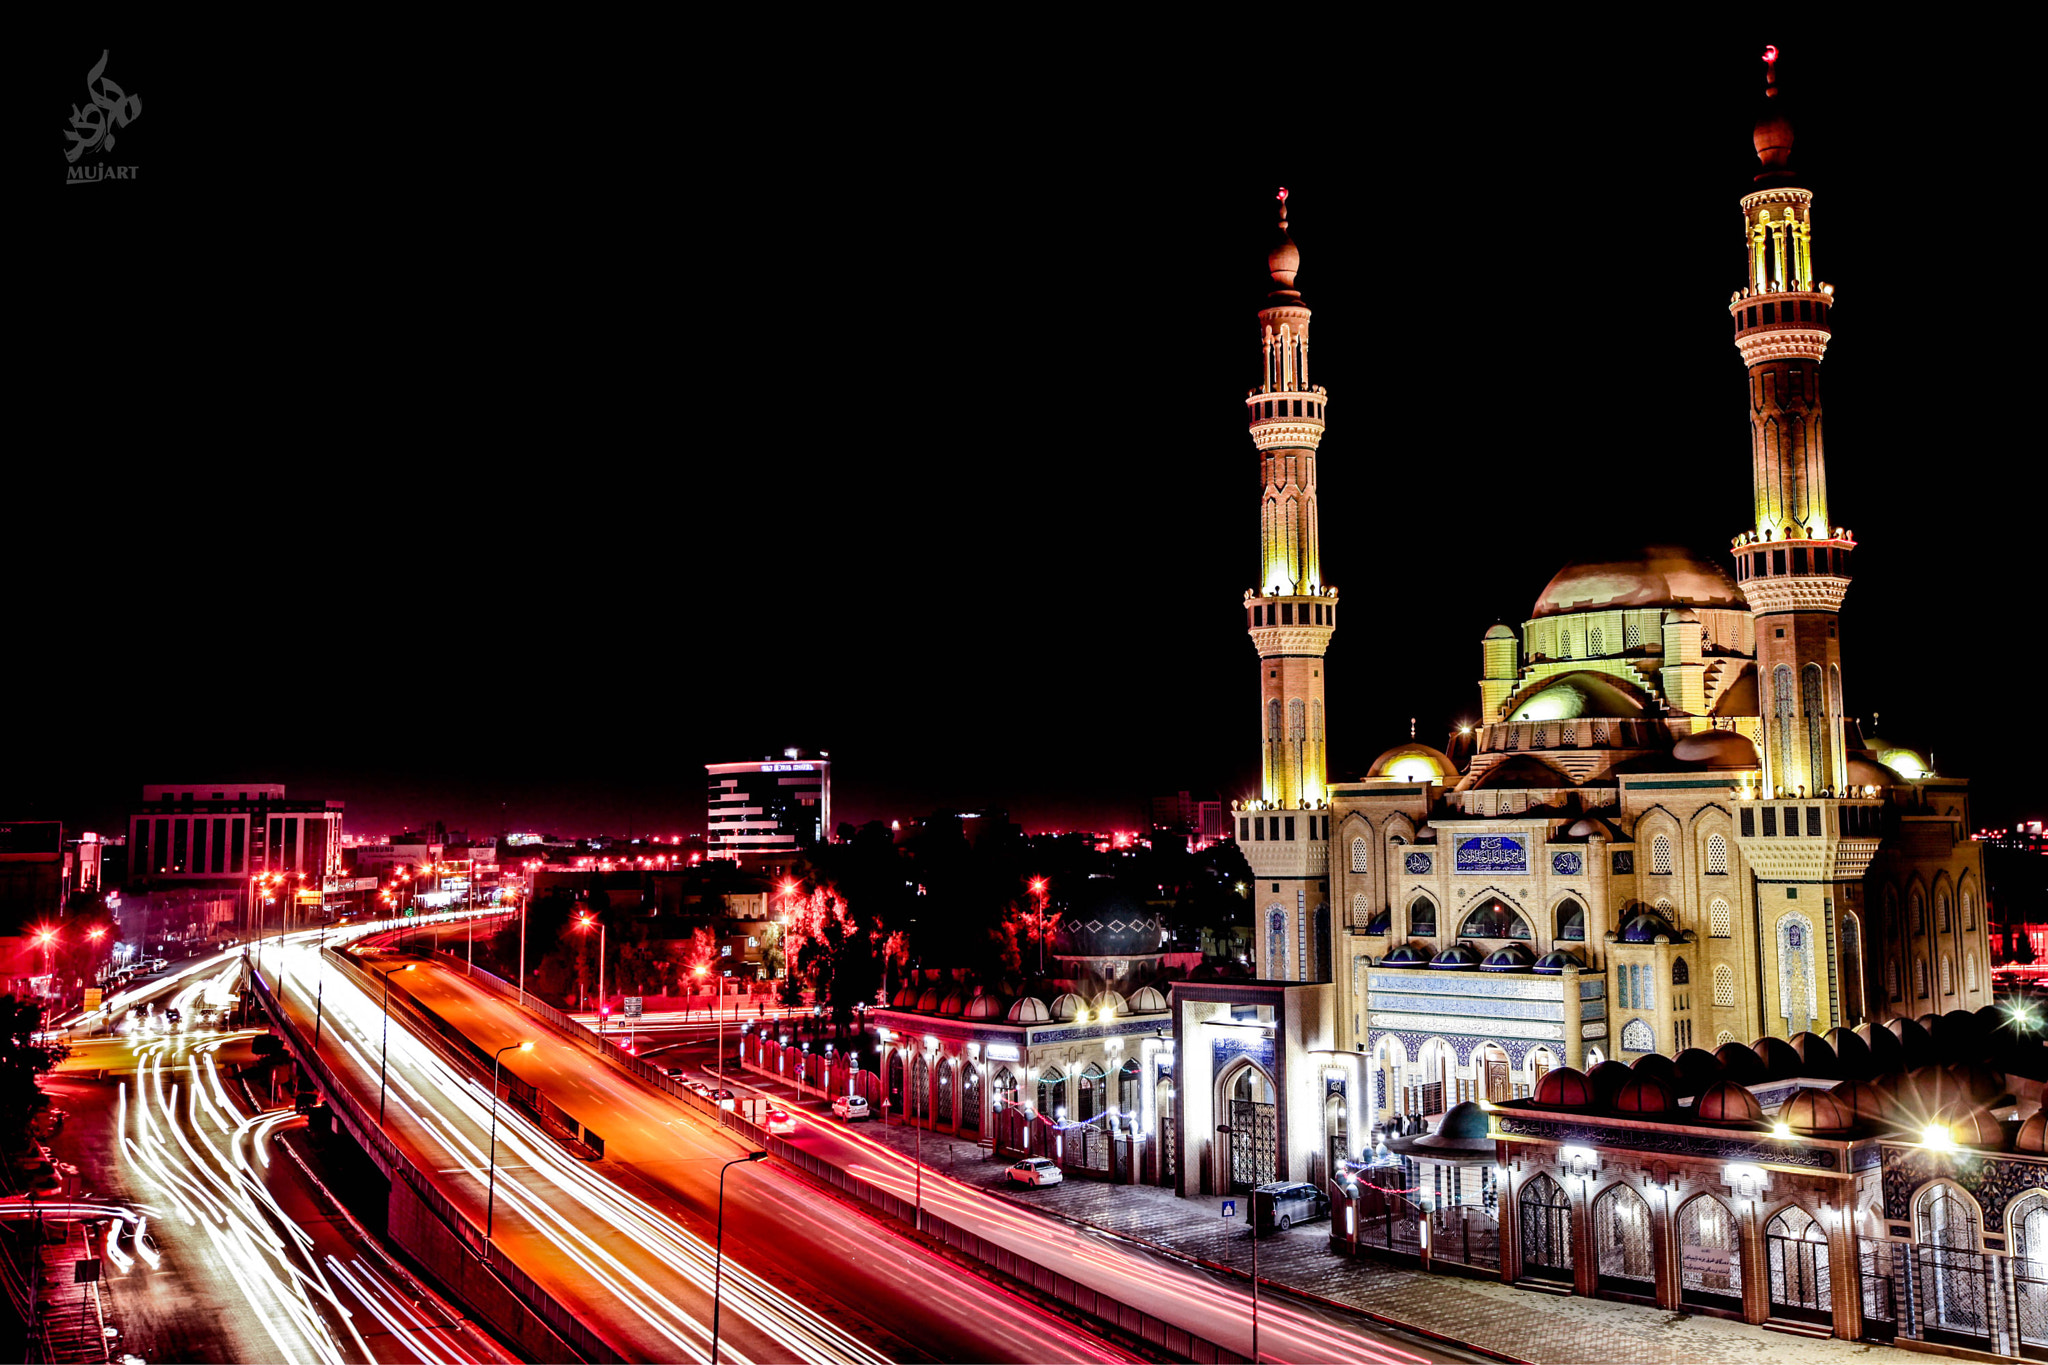 Photograph A Blessed Night by MUJART ZAID on 500px